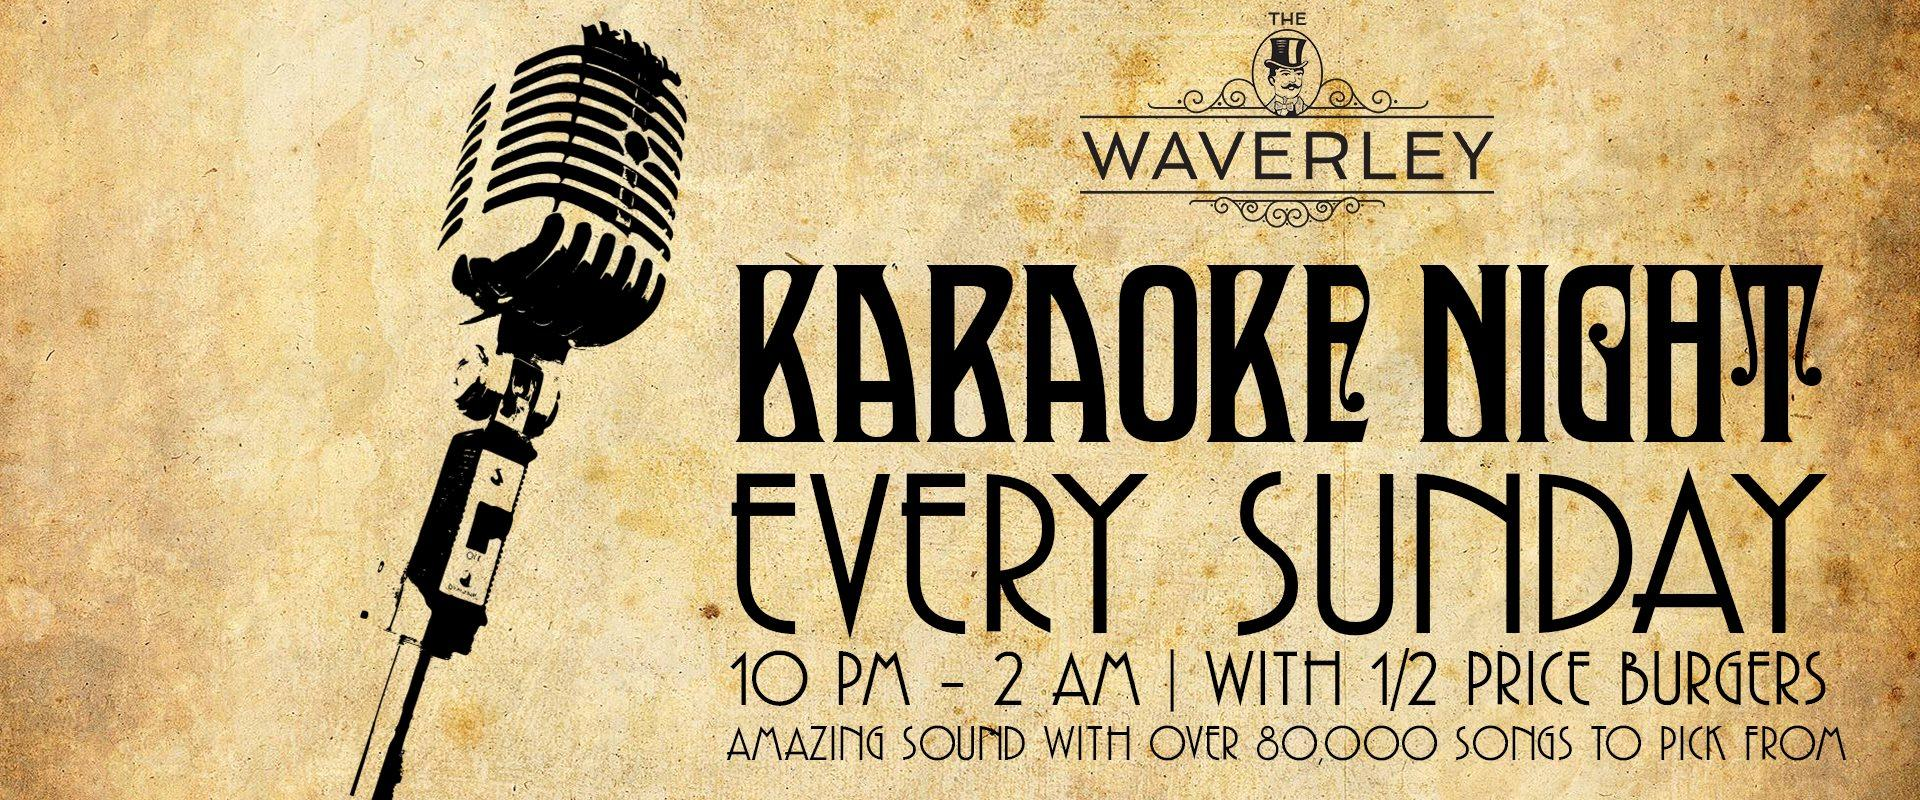 Karaoke Sundays @ The Waverley.